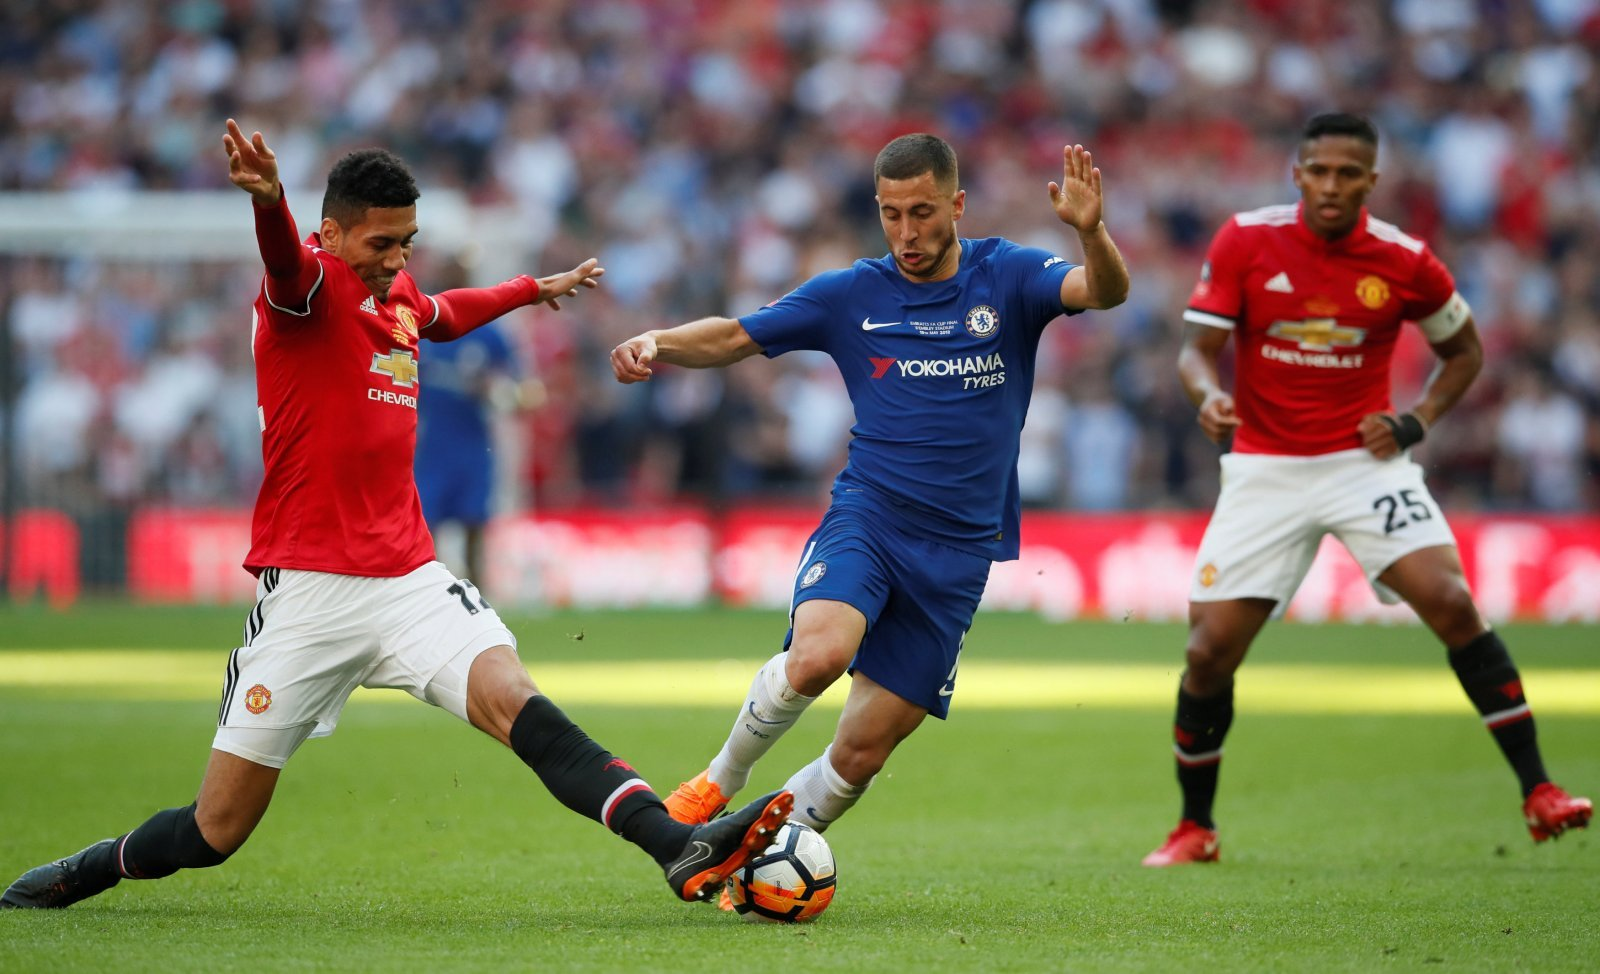 Chris Smalling deal would be a sideways move from Everton